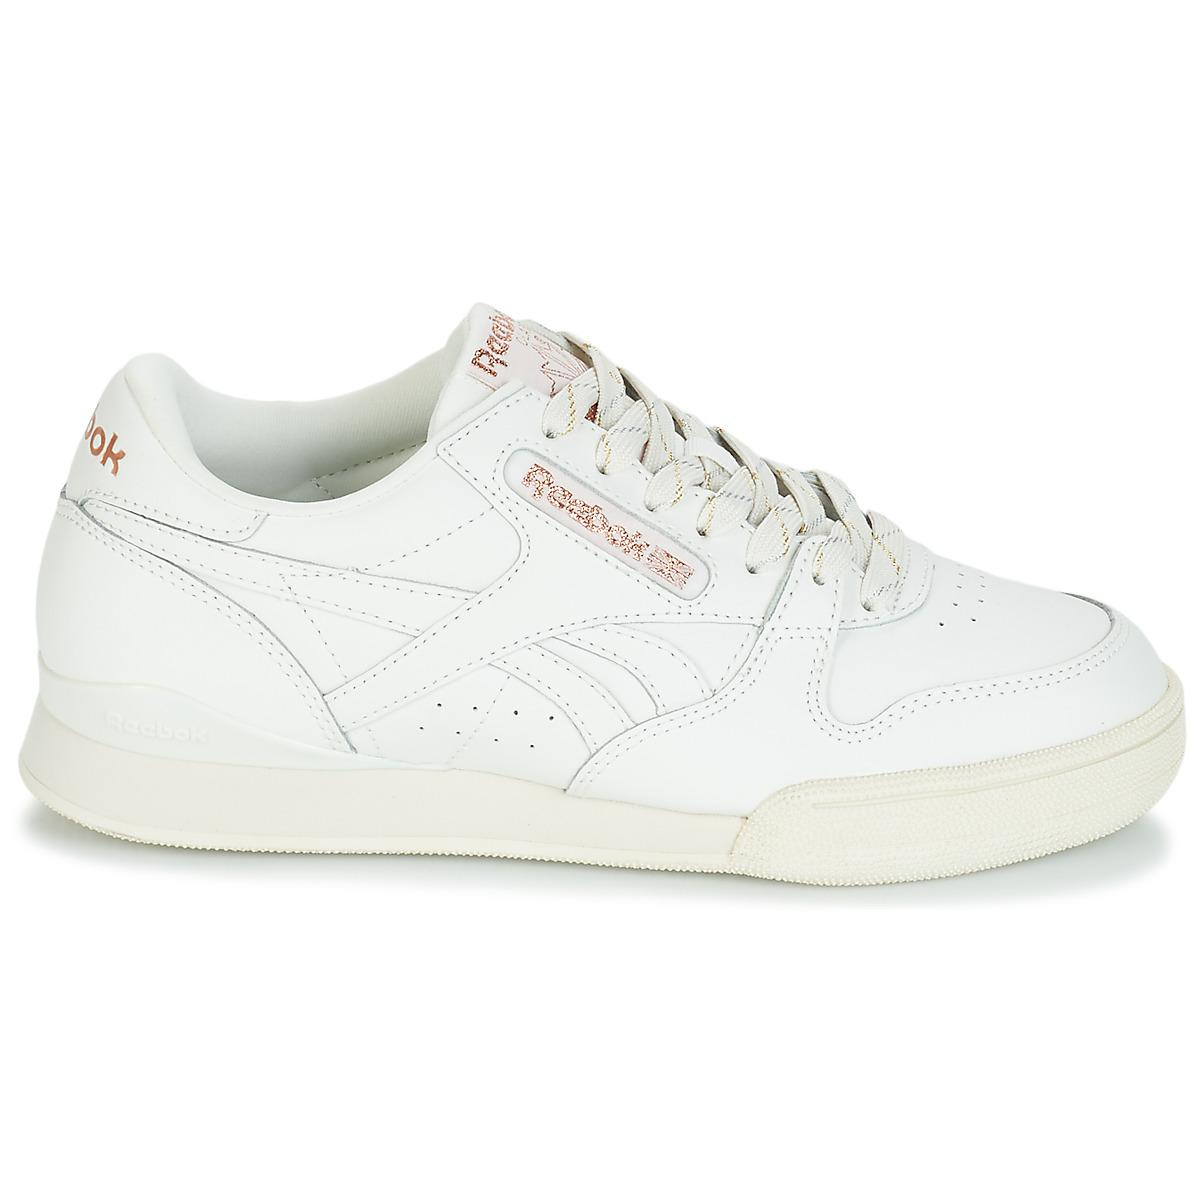 72bce18d5c1 Reebok - White Phase 1 Pro Shoes (trainers) - Lyst. View fullscreen